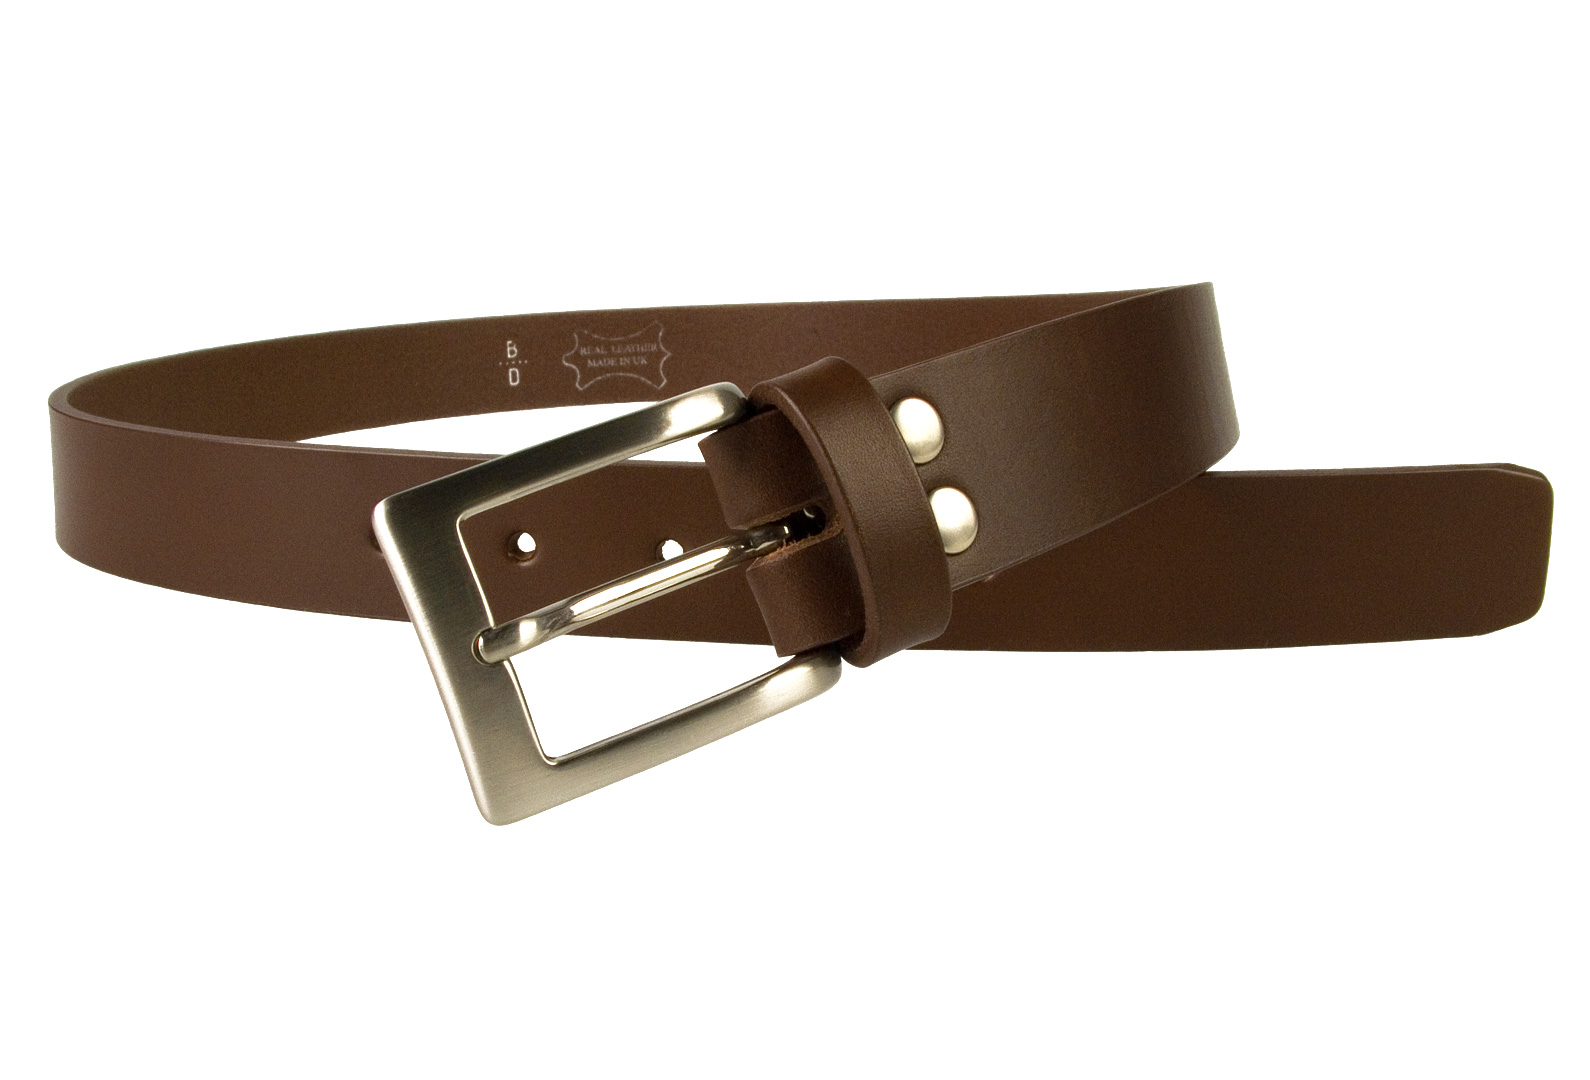 flip13bubble.tk Specialize in Men's & Women's Leather belts, casual belts, western belts, dress belts, jean belt, golf belts, leather belt straps, white belts, braided Great Men's selection, Quality and Price. Our customers can now buy quality men's & women's genuine leather belts directly from us.